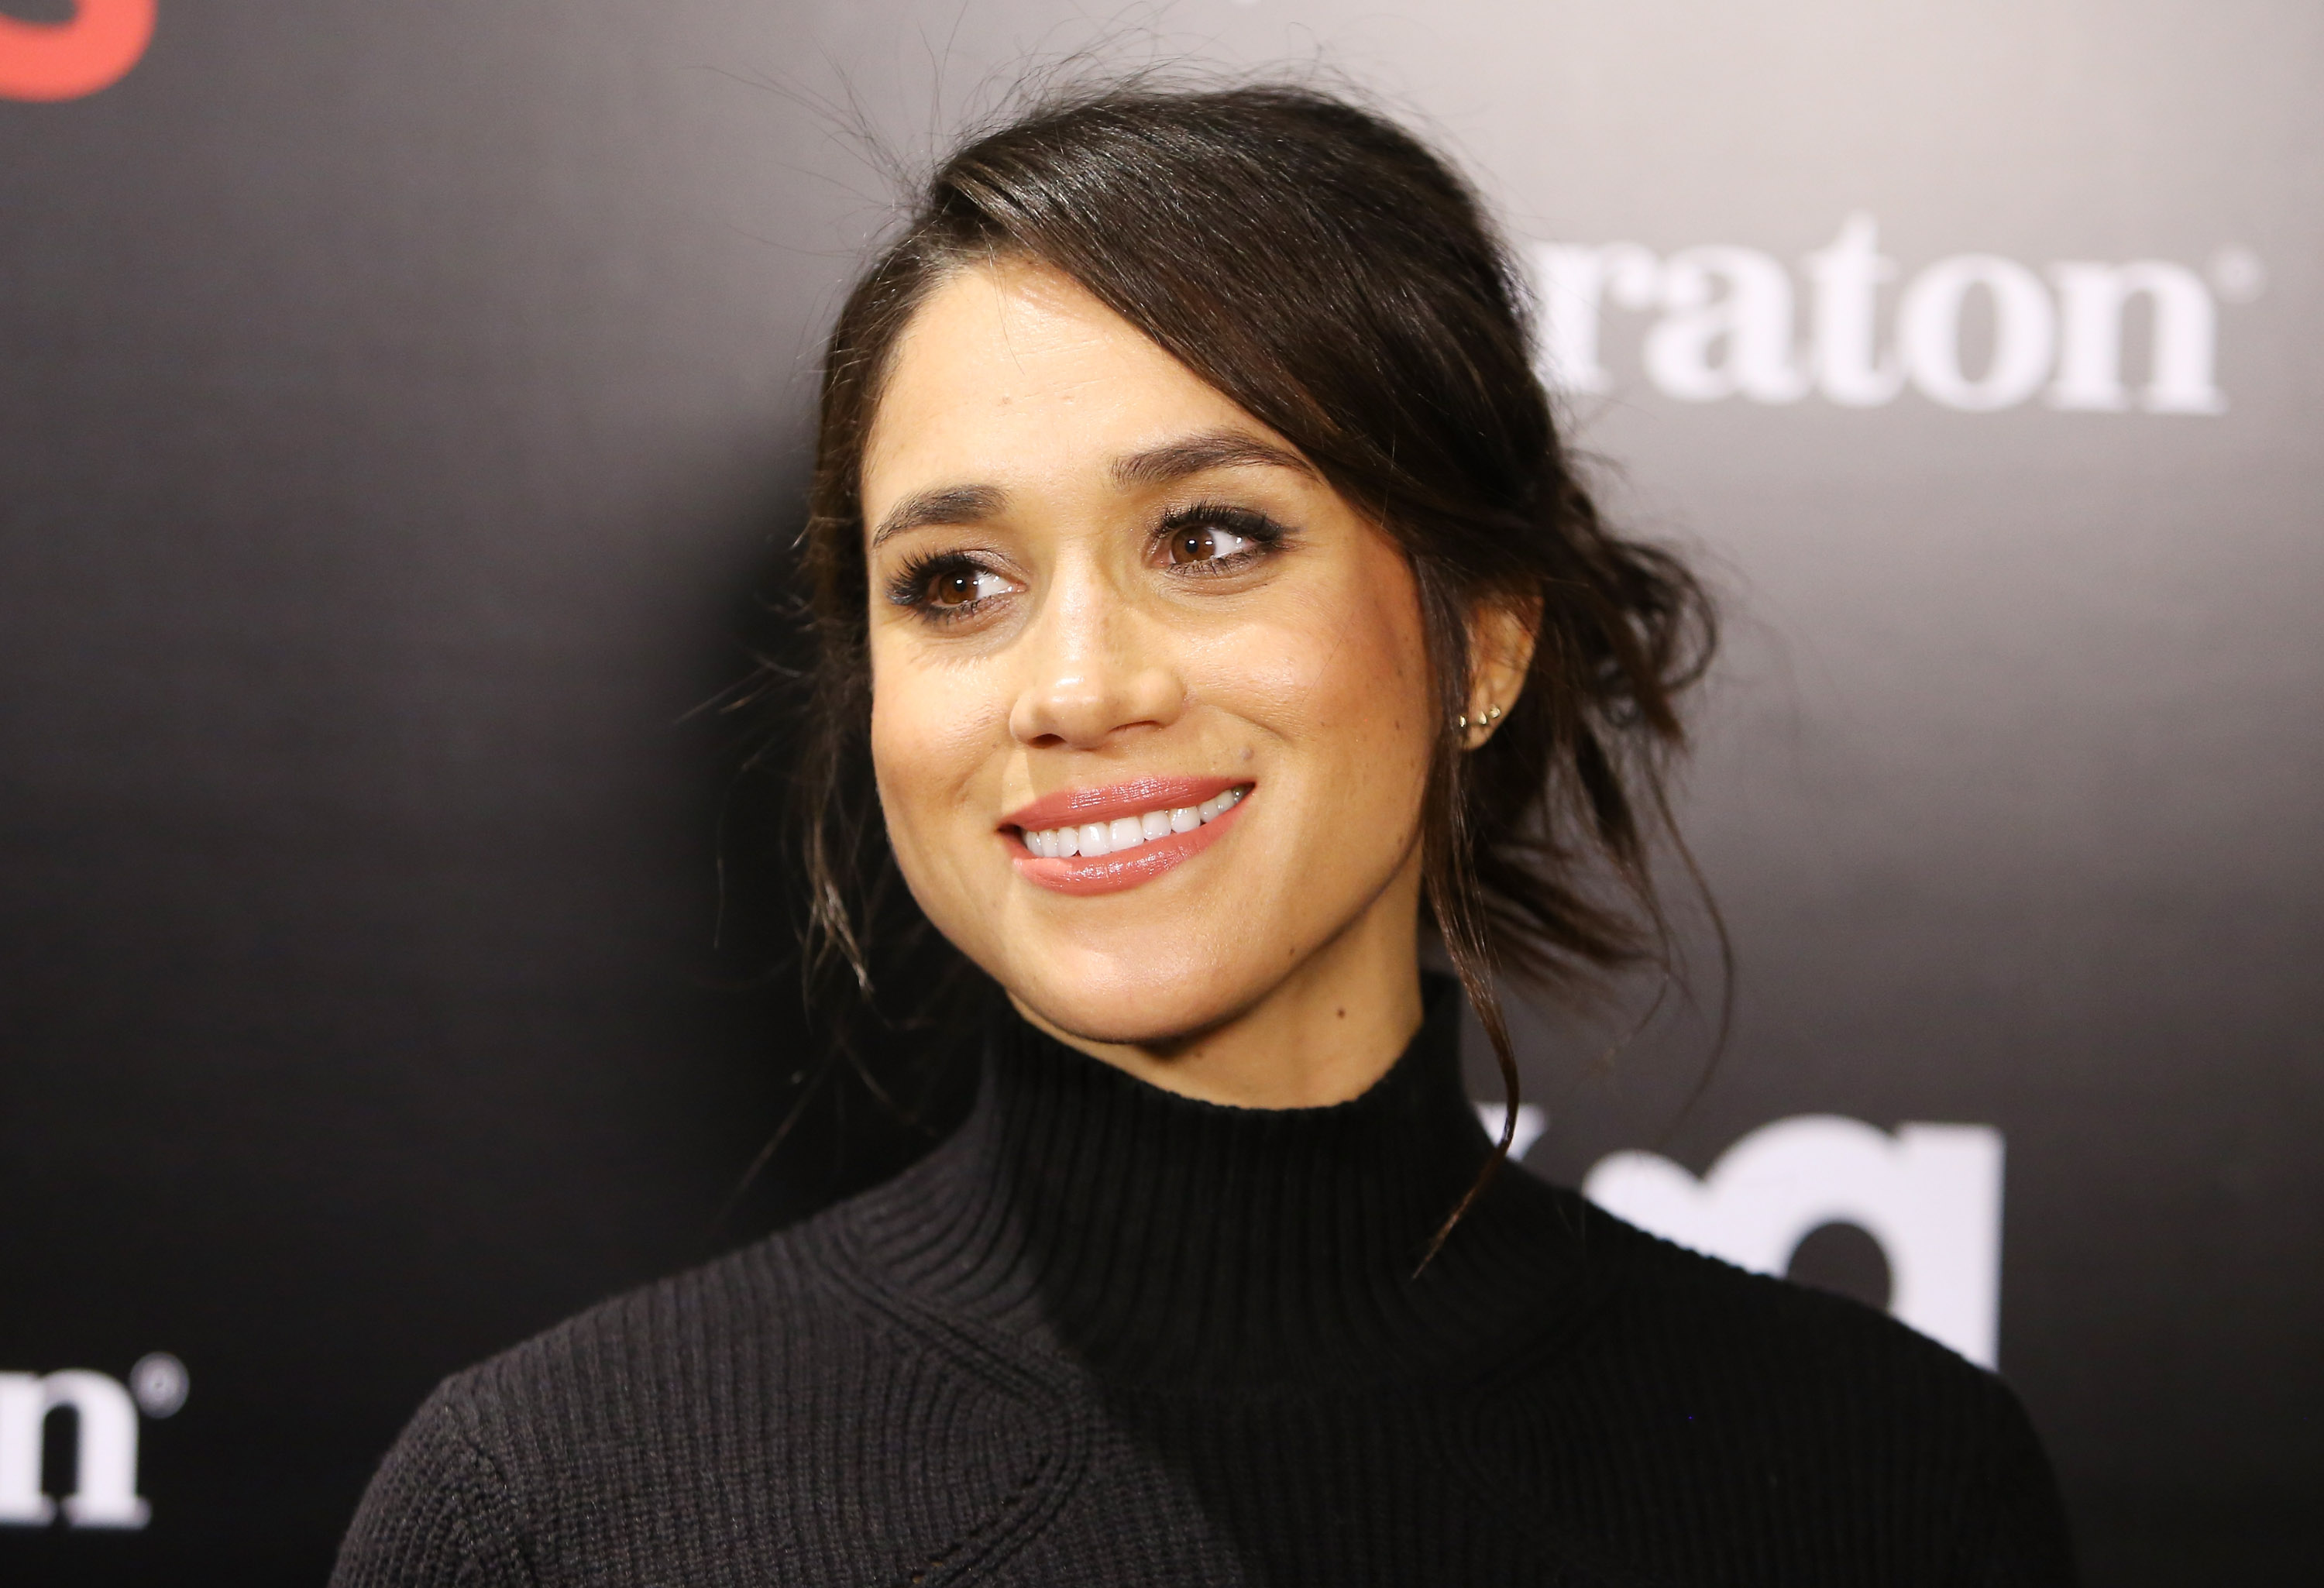 Meghan Markle poses for a picture at an event in a black dress